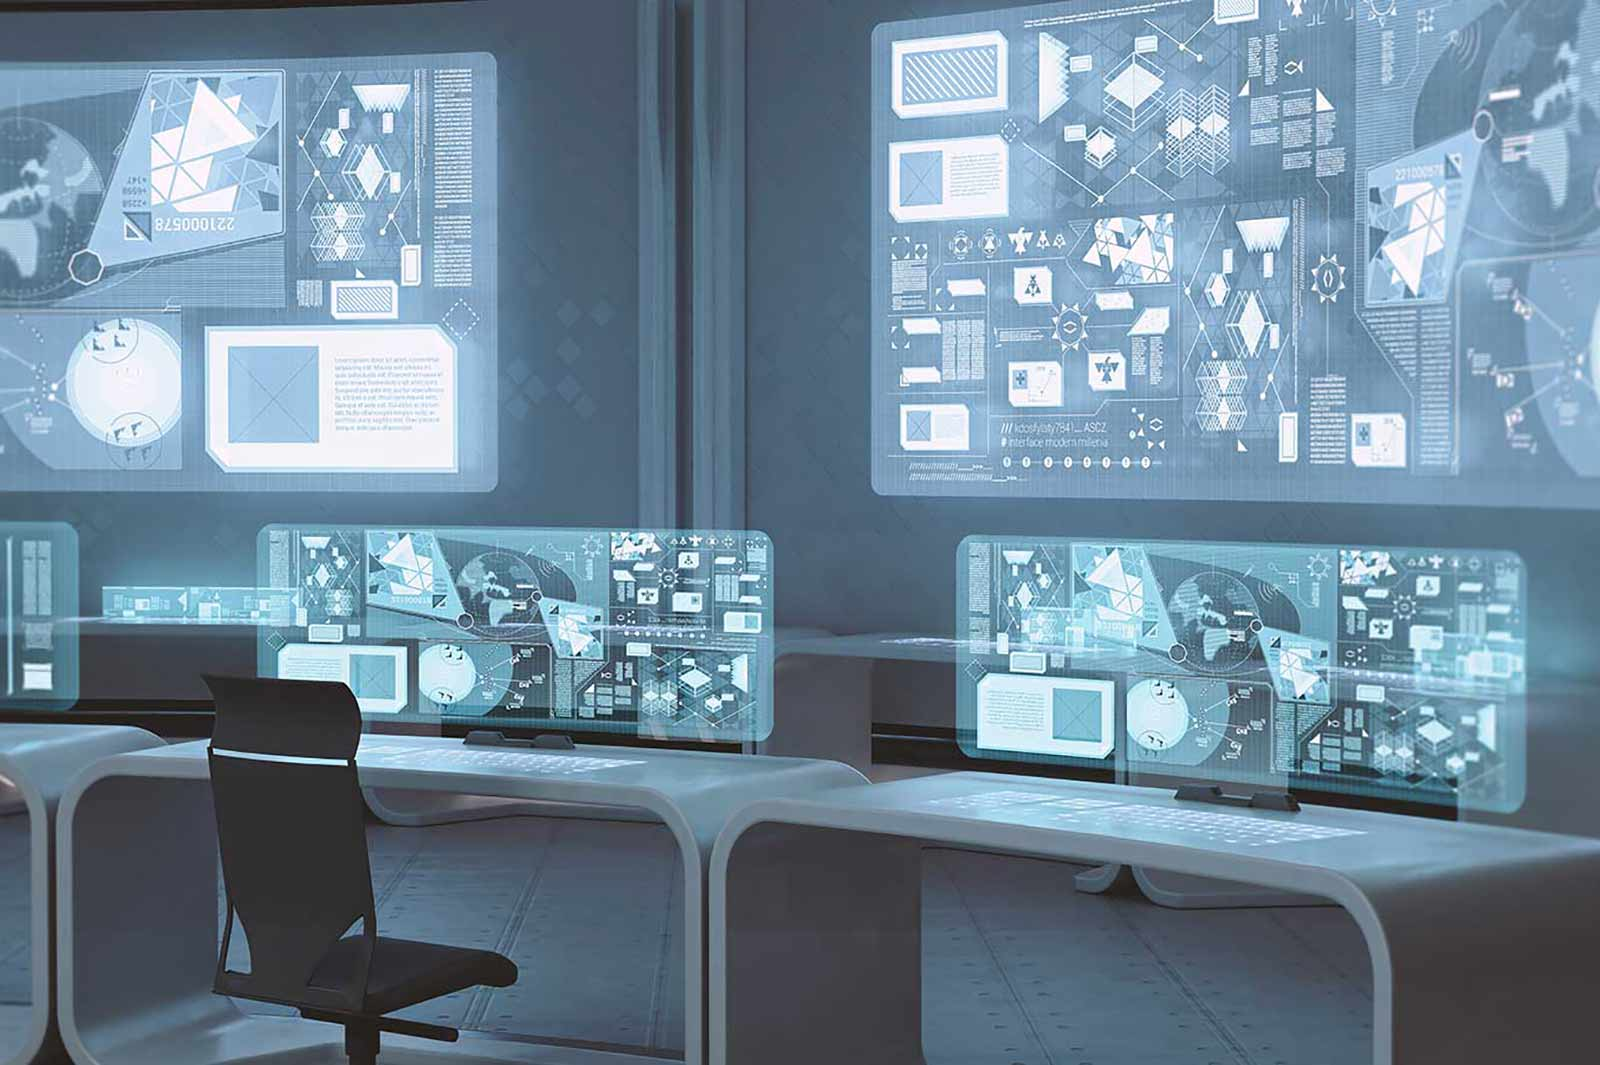 Command & control systems